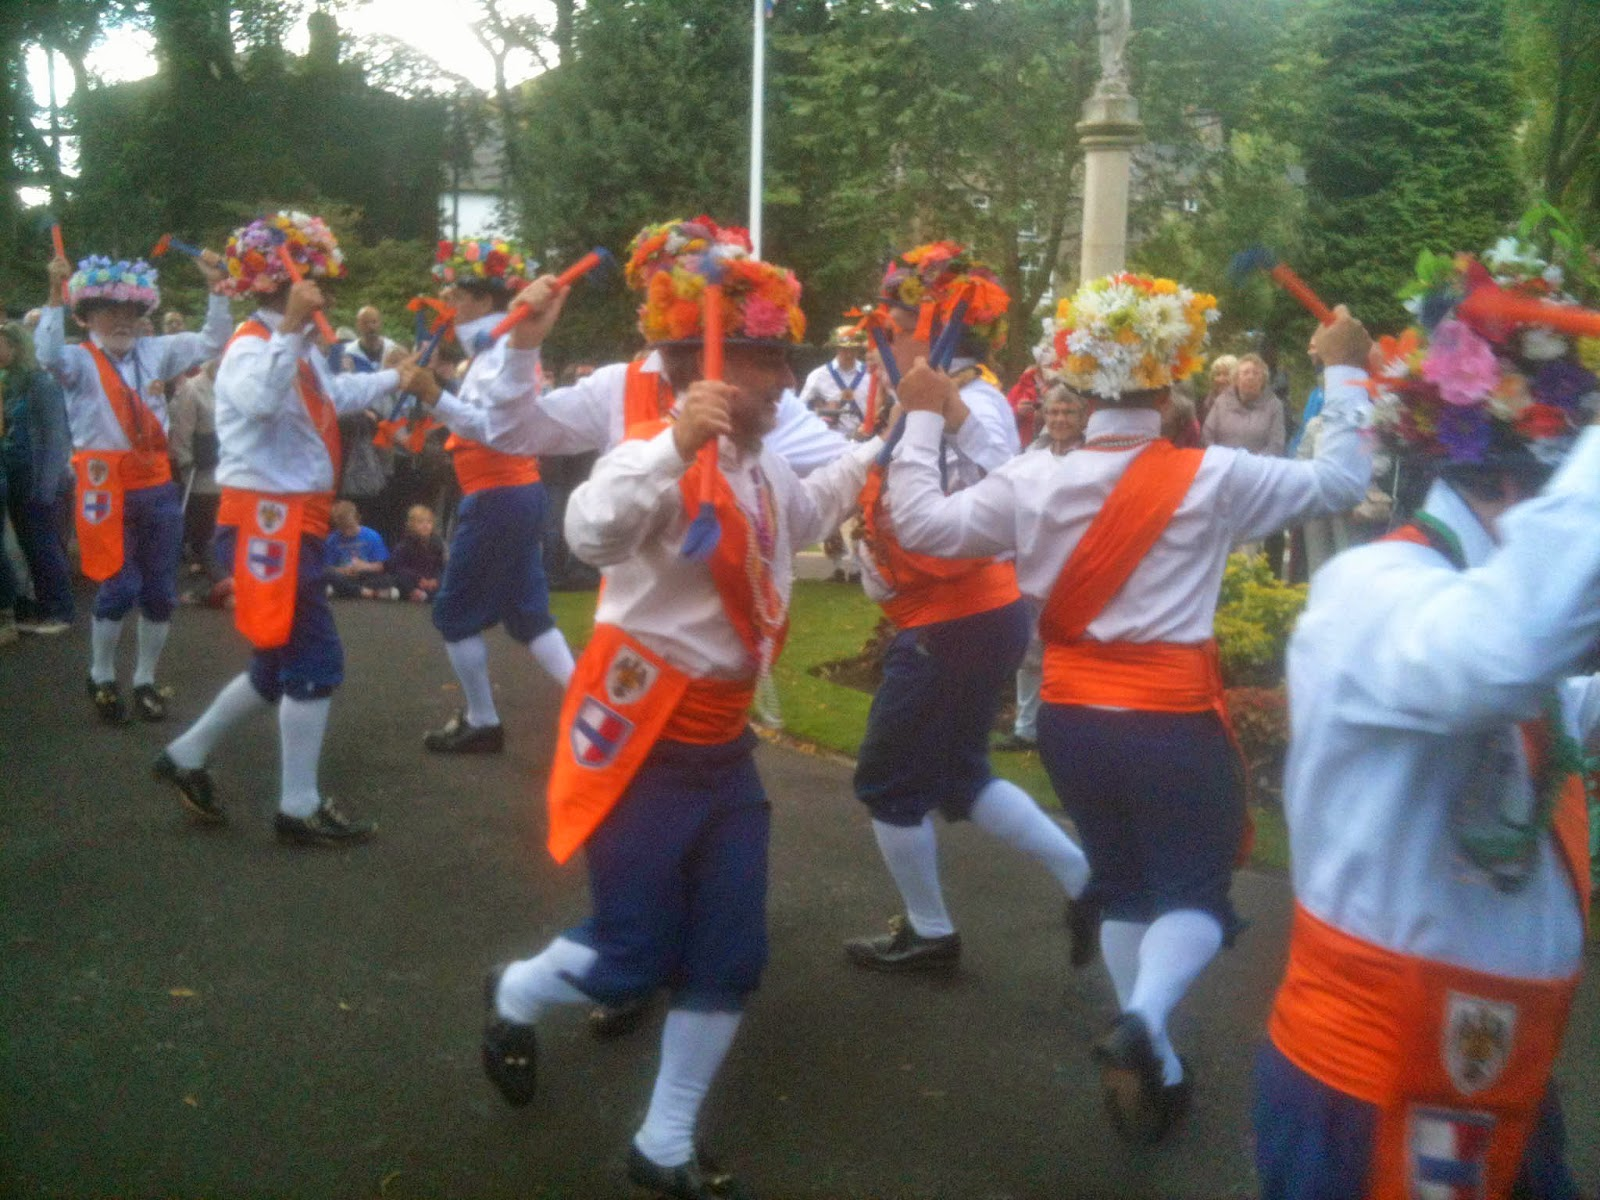 Morris dancing is drum 'n bells.